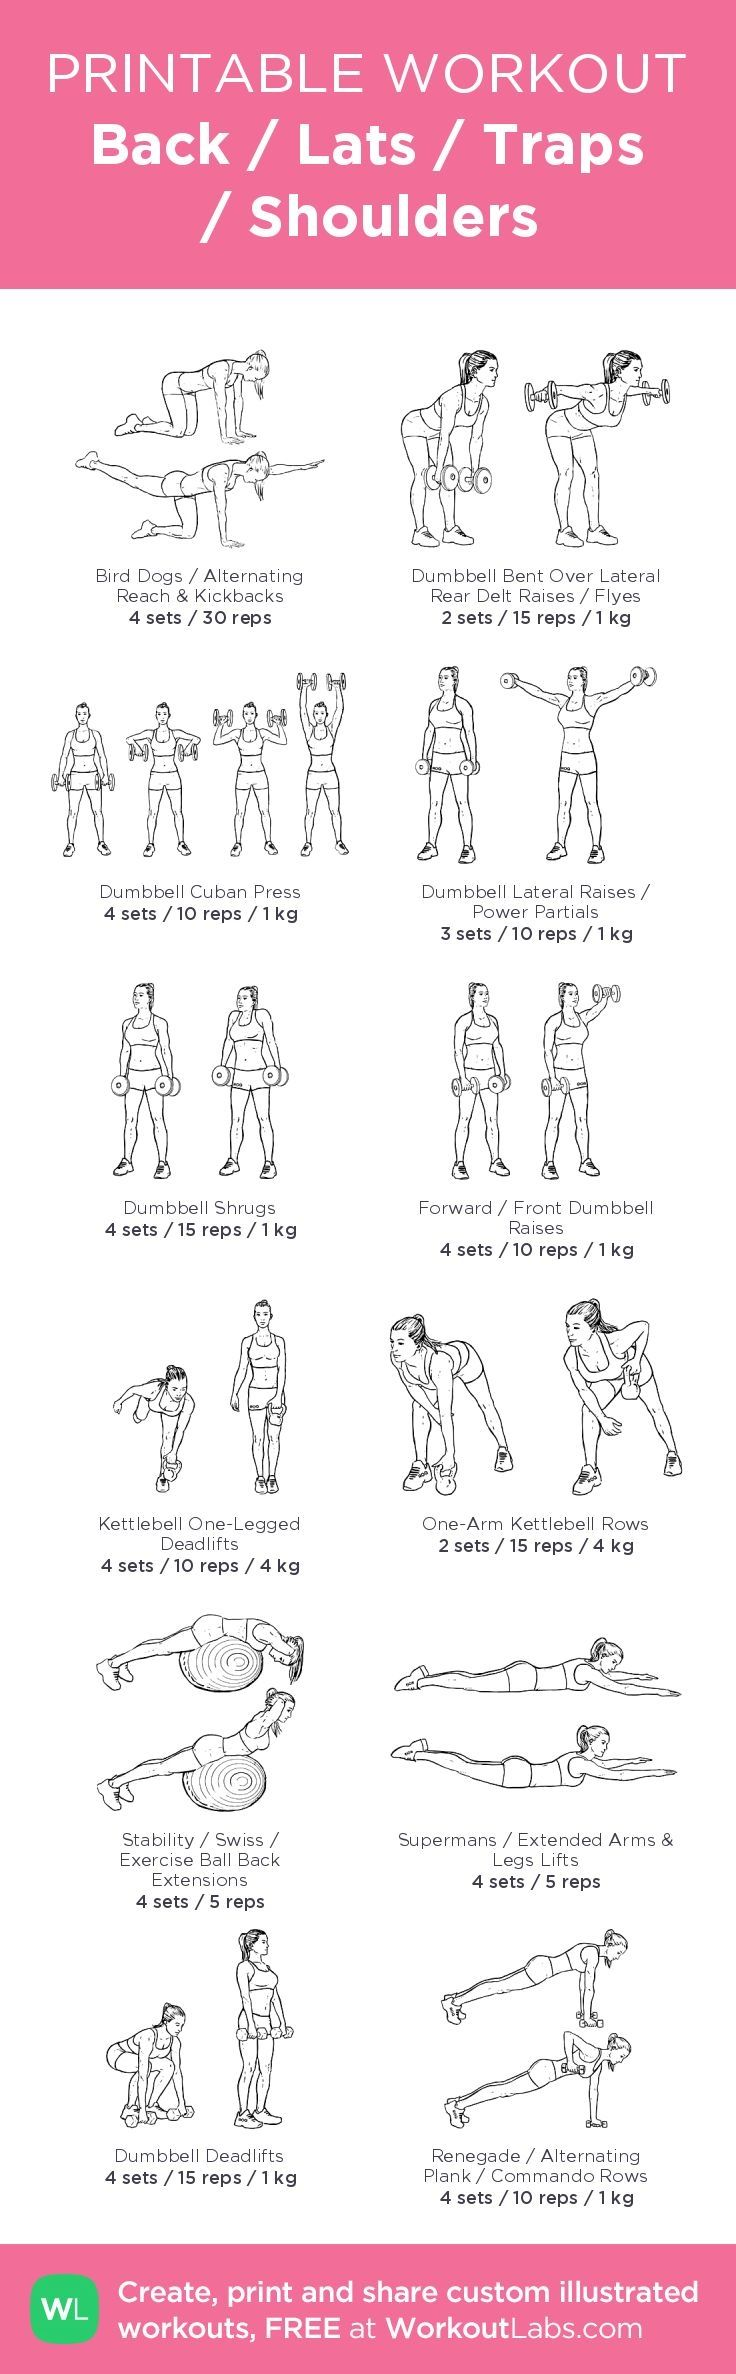 Back / Lats / Traps / Shoulders– my custom exercise plan created at http://WorkoutLabs.com • Click through to download as a printable workout PDF #customworkout #totalbodytransformation